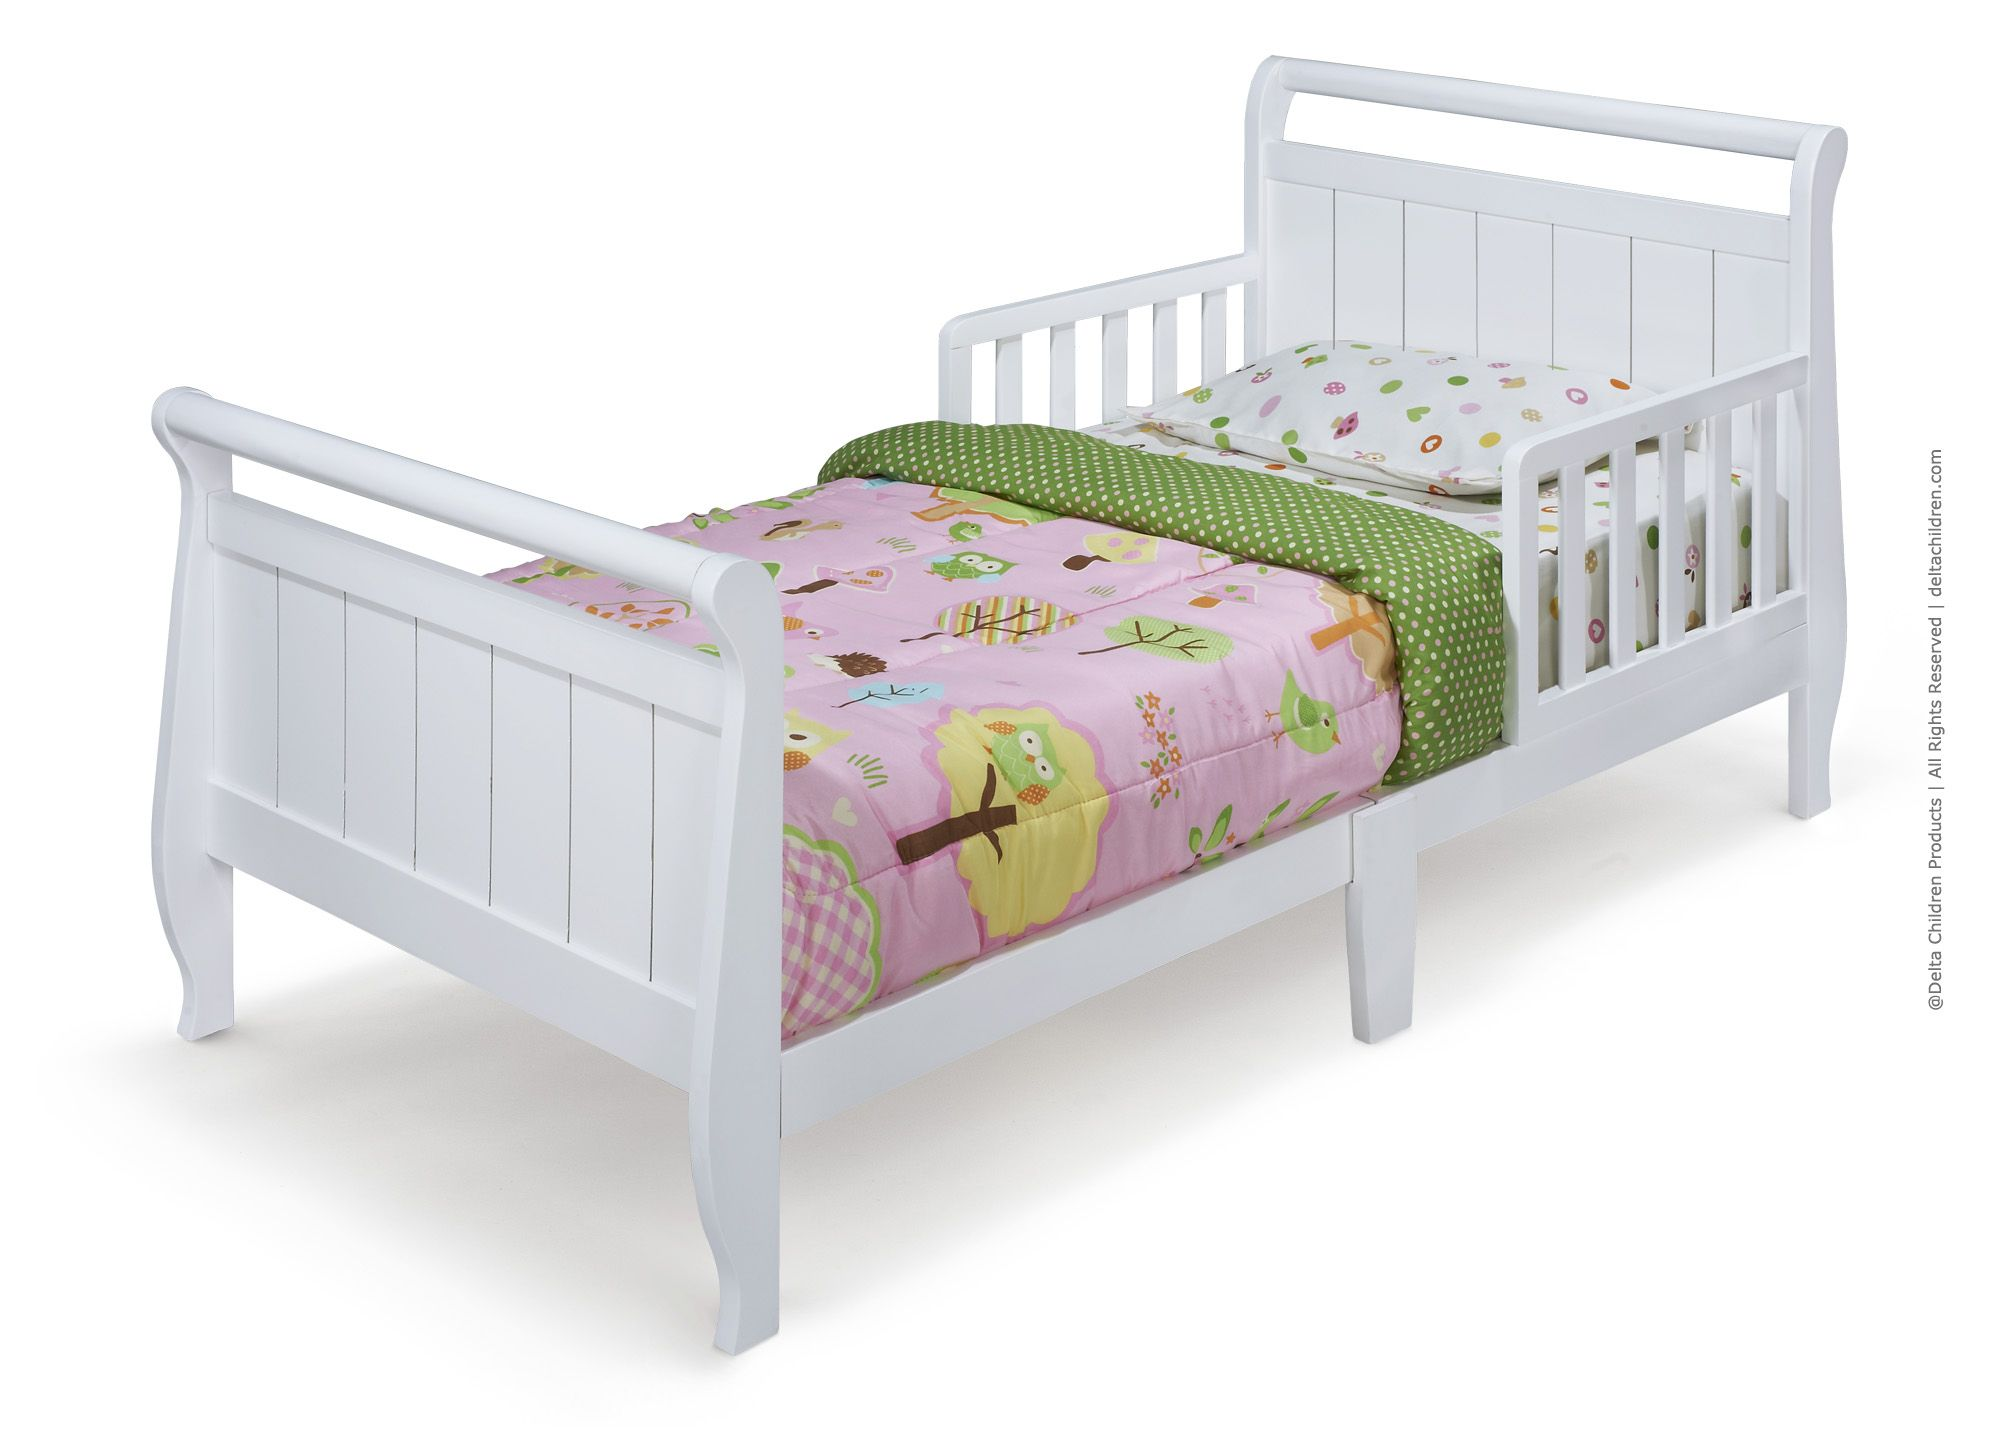 Wooden Toddler Beds Toddler Collection By Delta Children Wooden